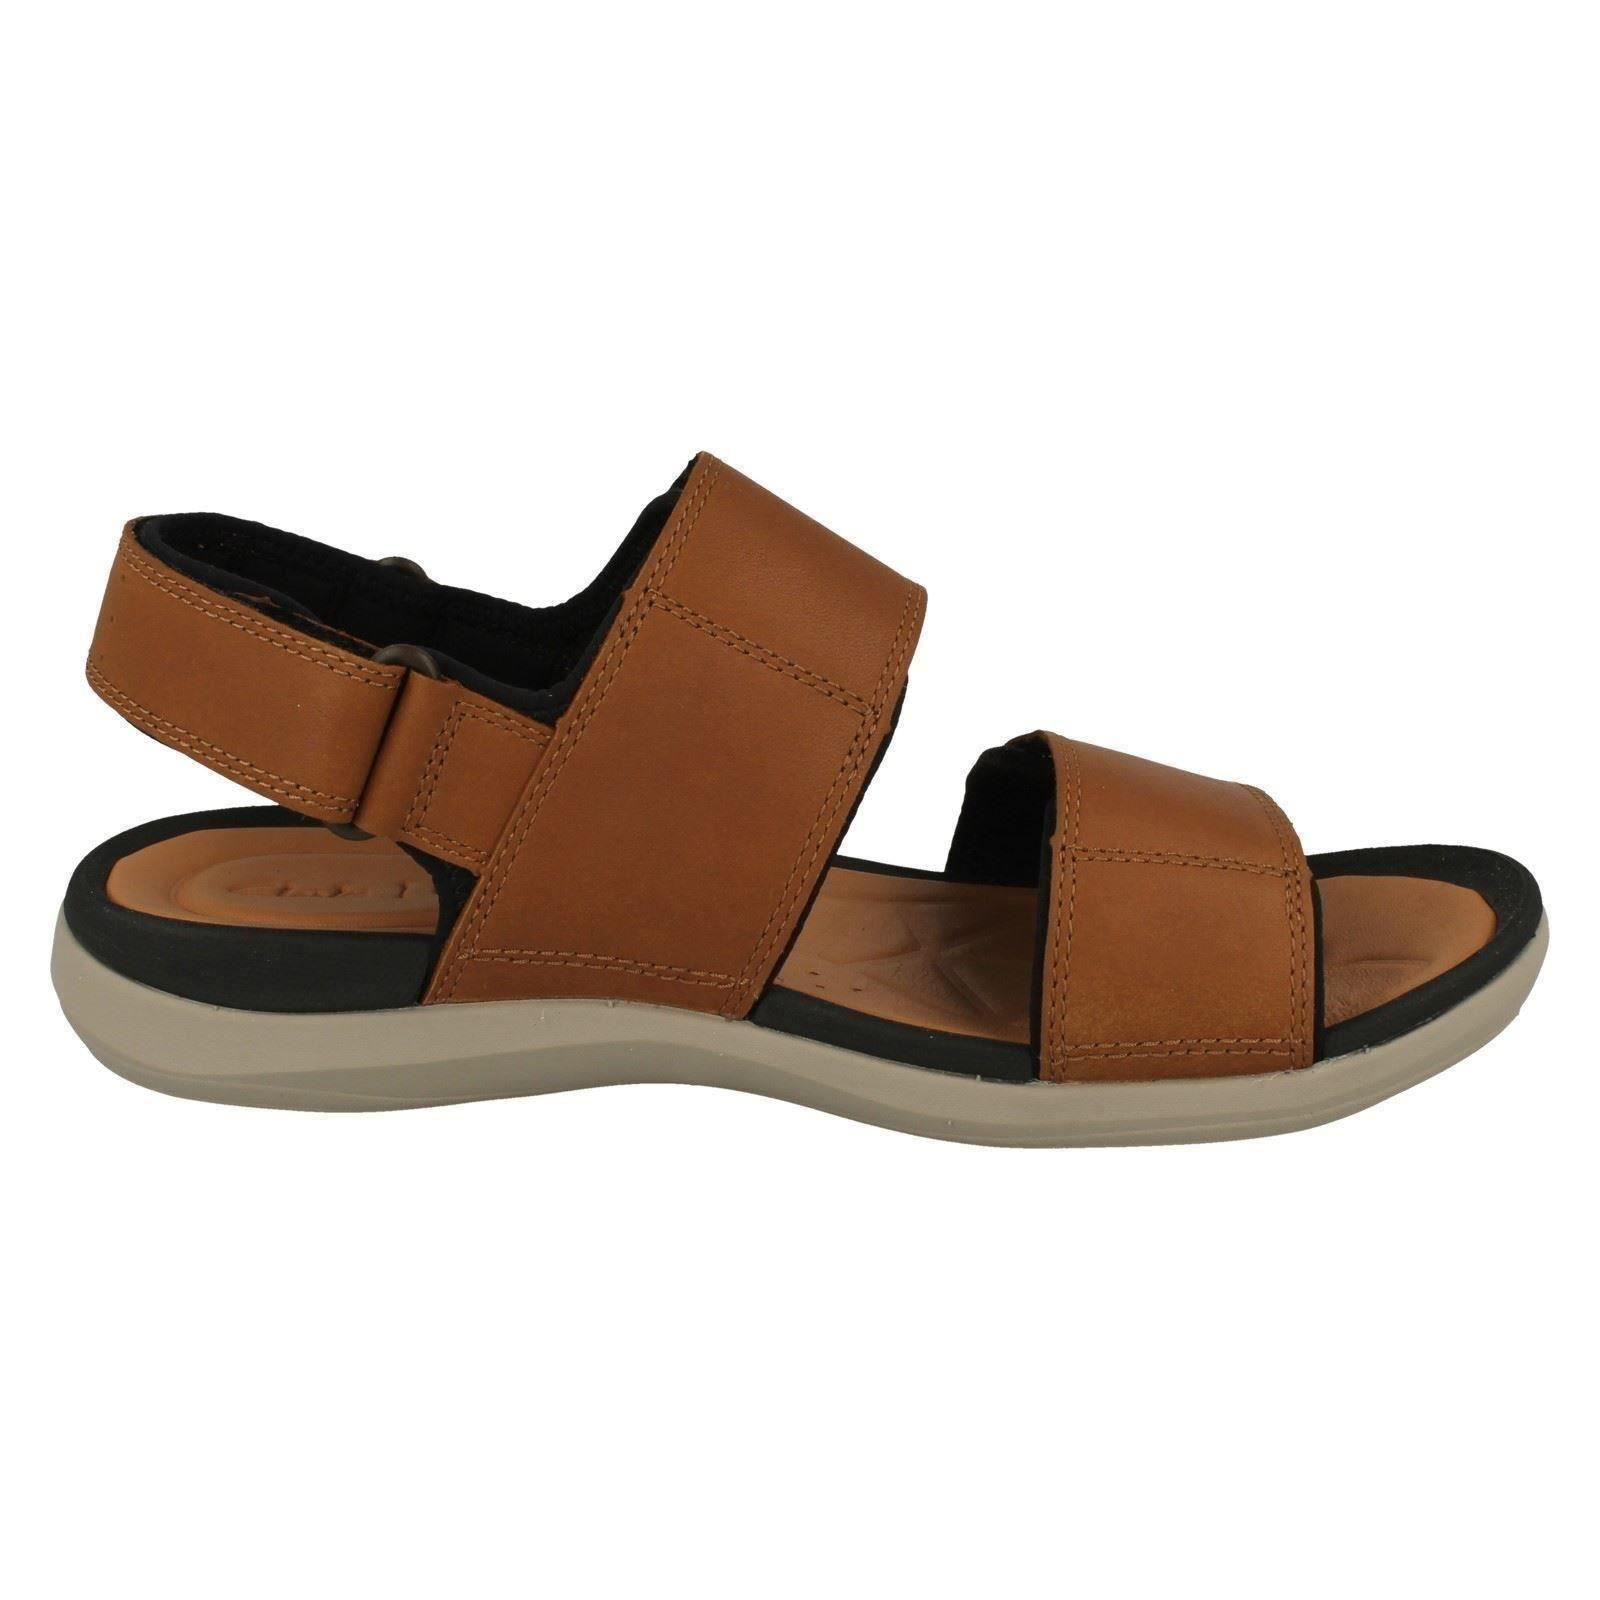 Men's Clarks Leather Open Toe Casual  Sandals The Style - Garratt Active